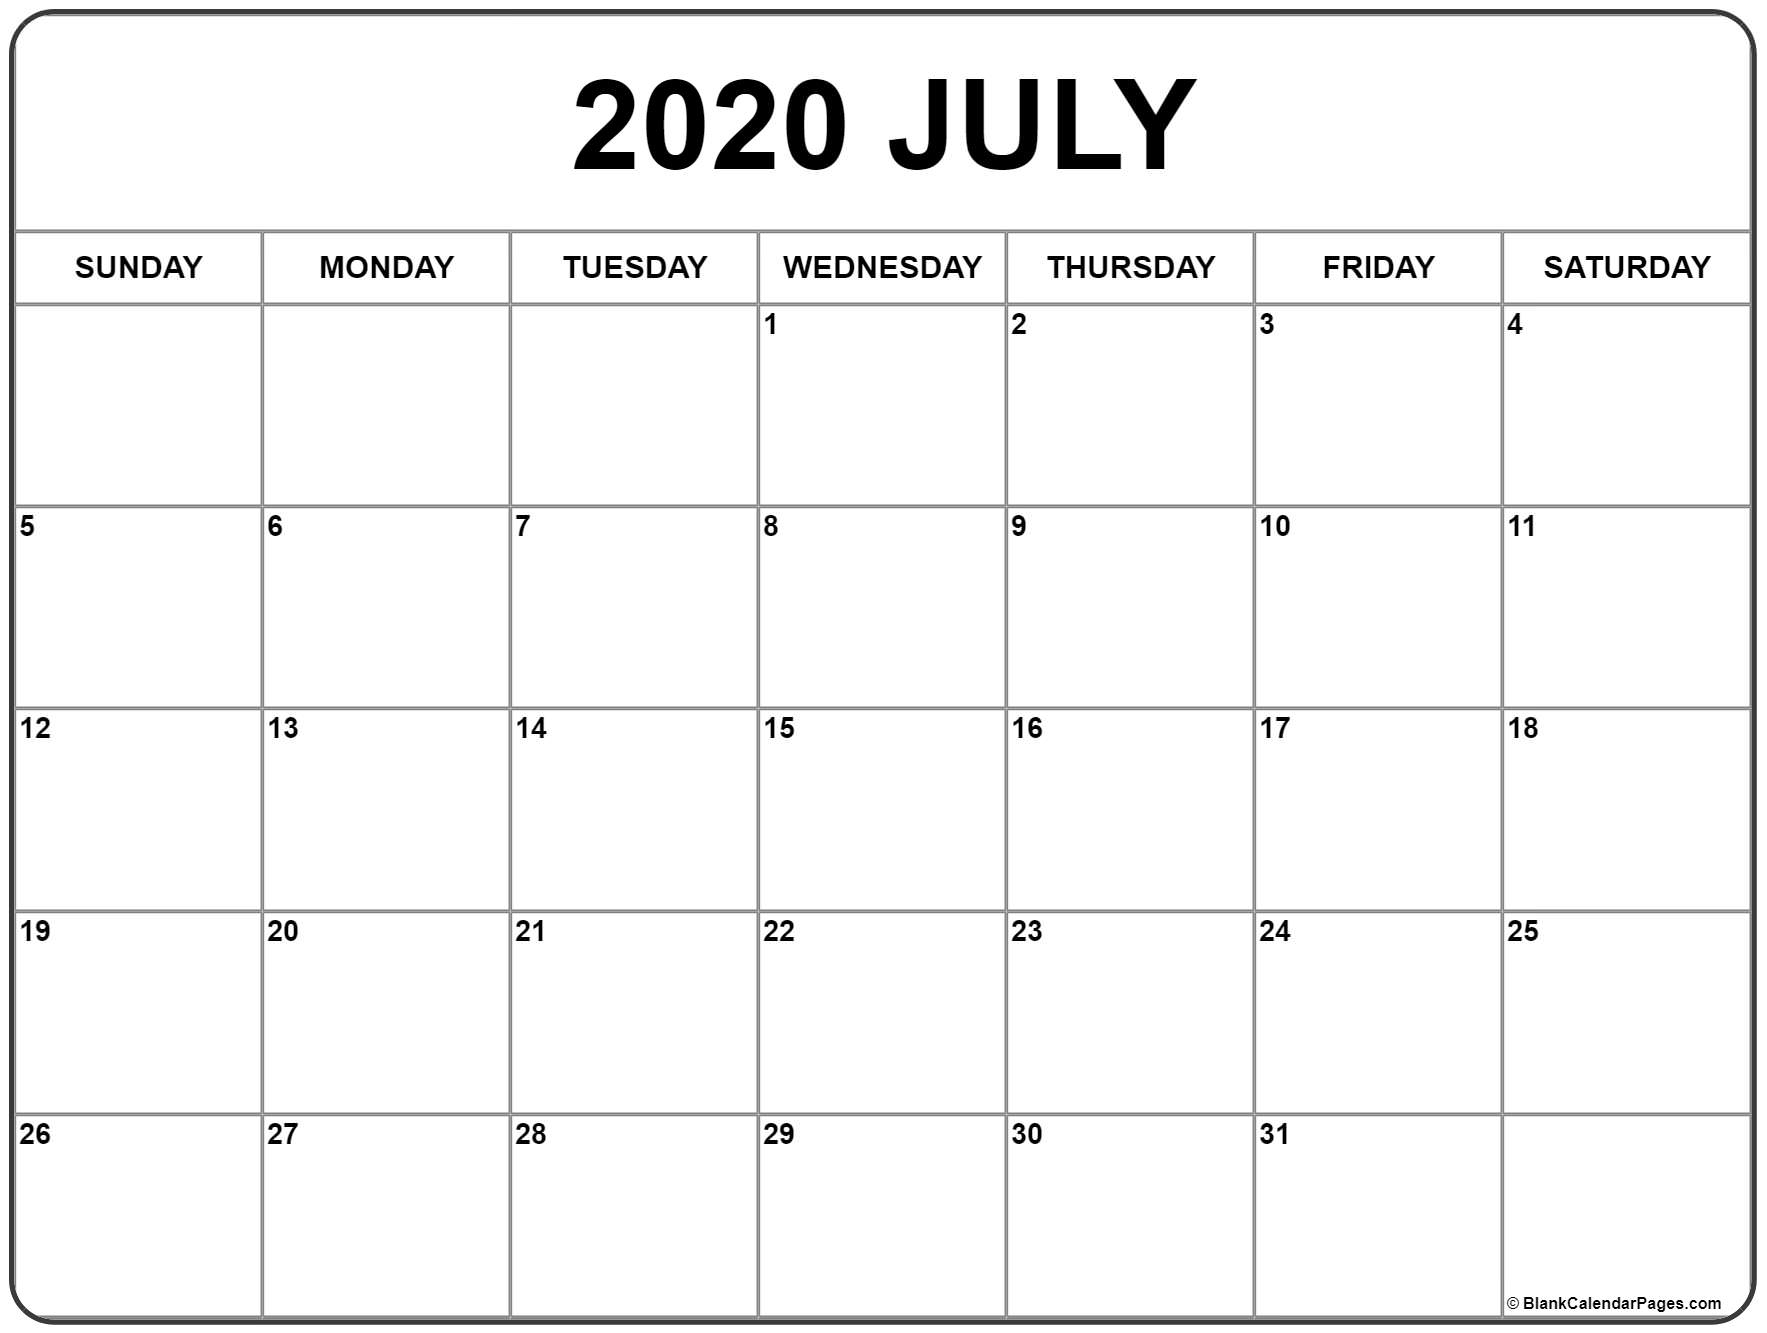 July 2020 Calendar | Free Printable Monthly Calendars